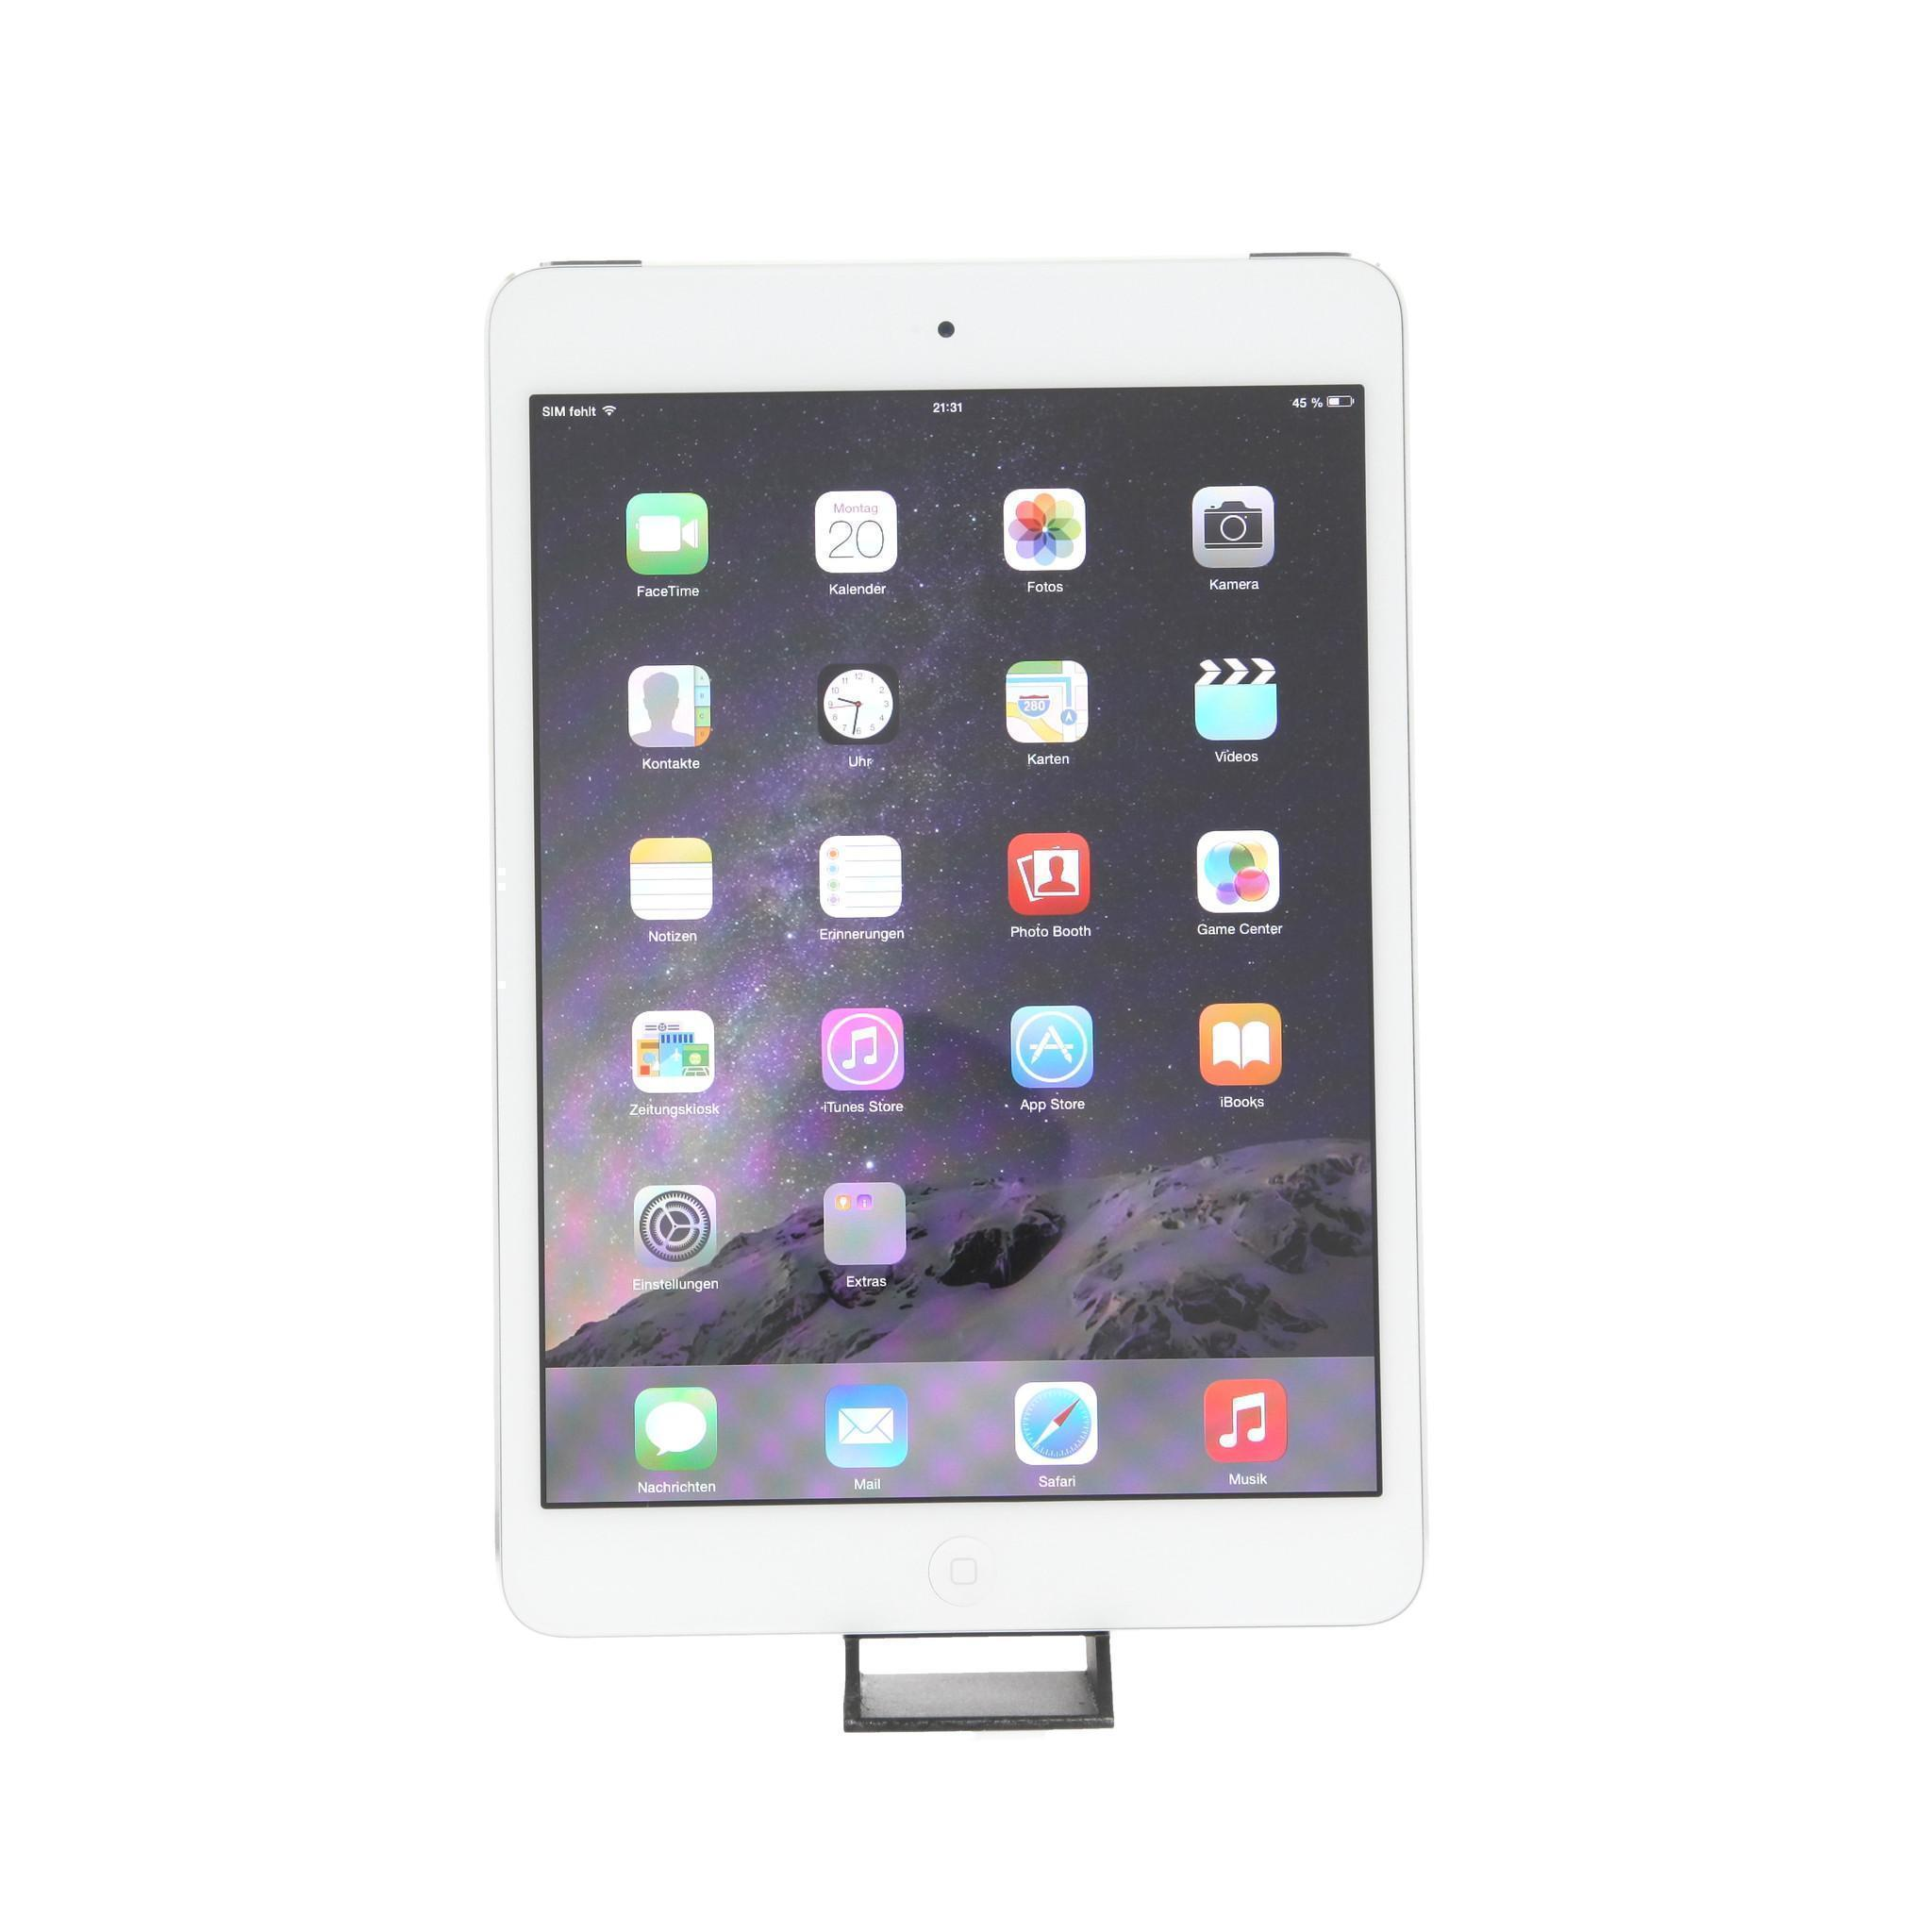 ipad mini 16gb wlan lte wei ohne vertrag. Black Bedroom Furniture Sets. Home Design Ideas